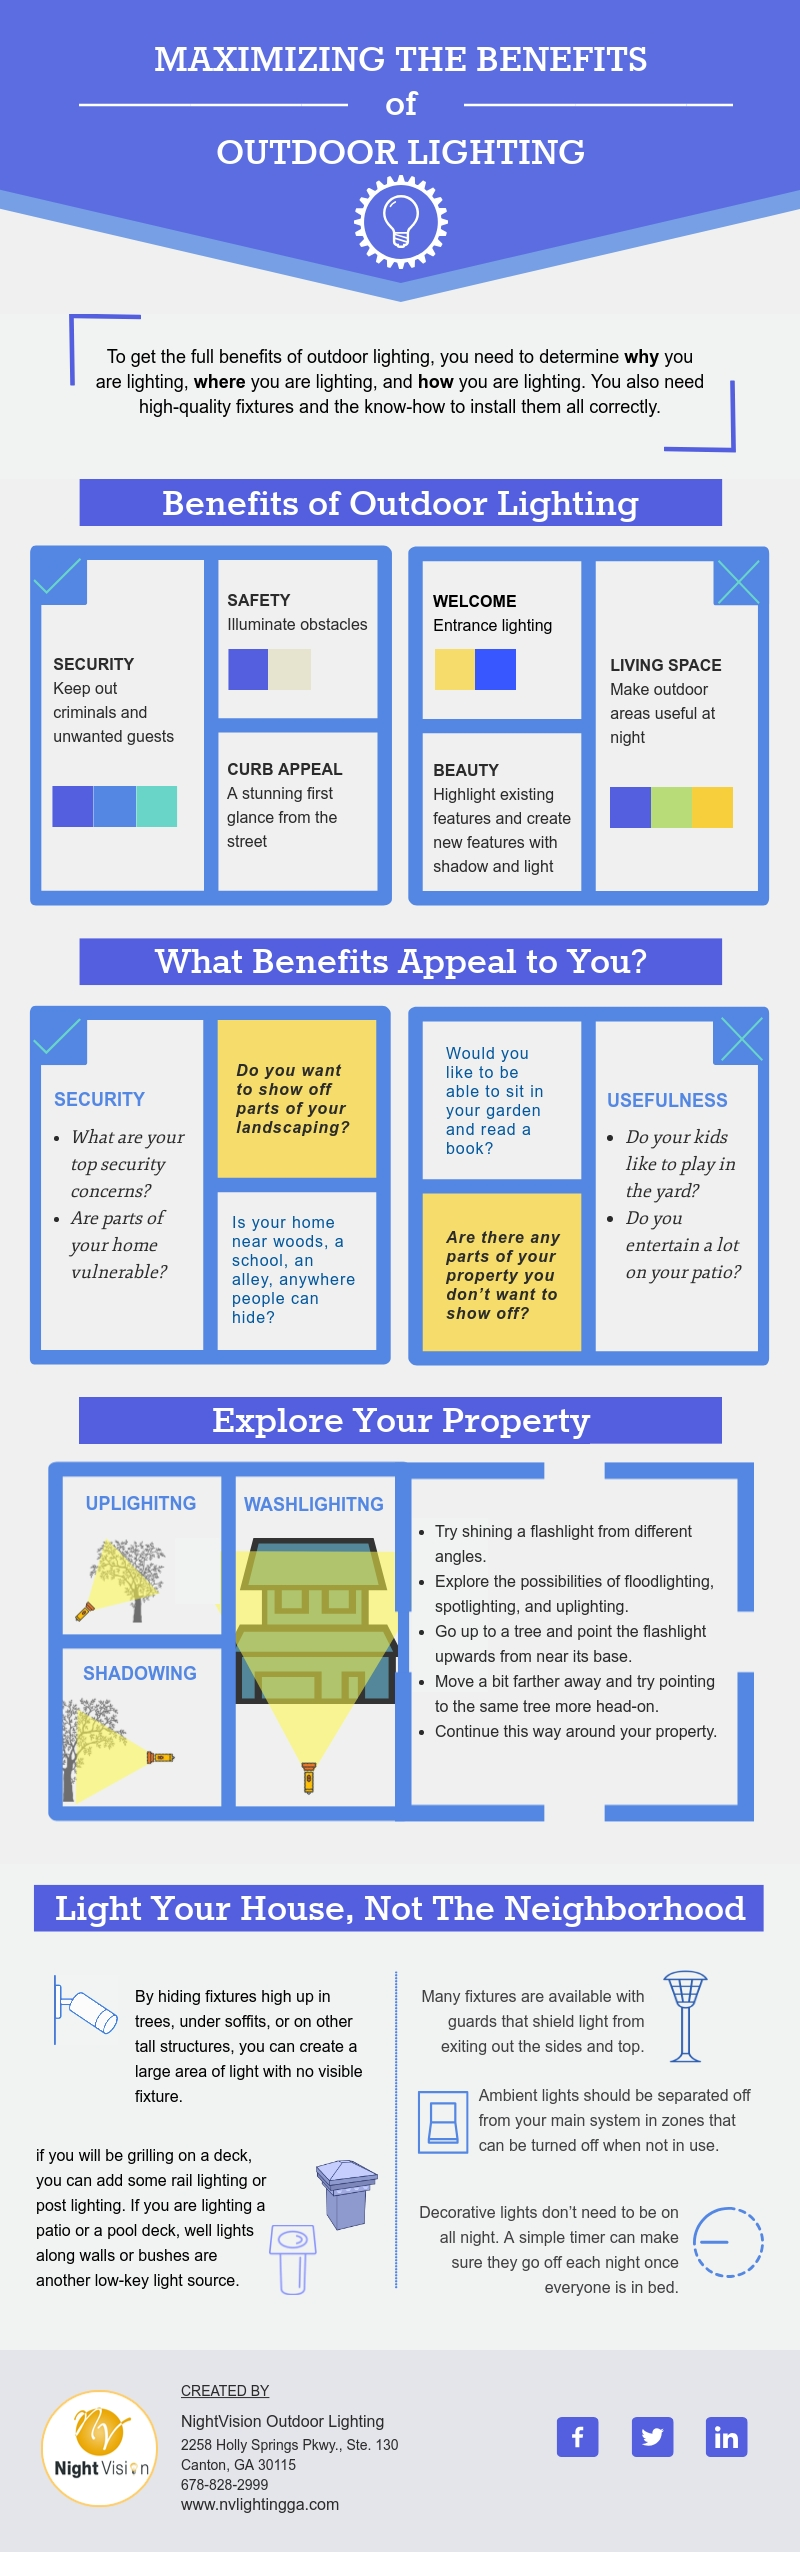 Maximizing the Benefits of Outdoor Lighting [infographic]